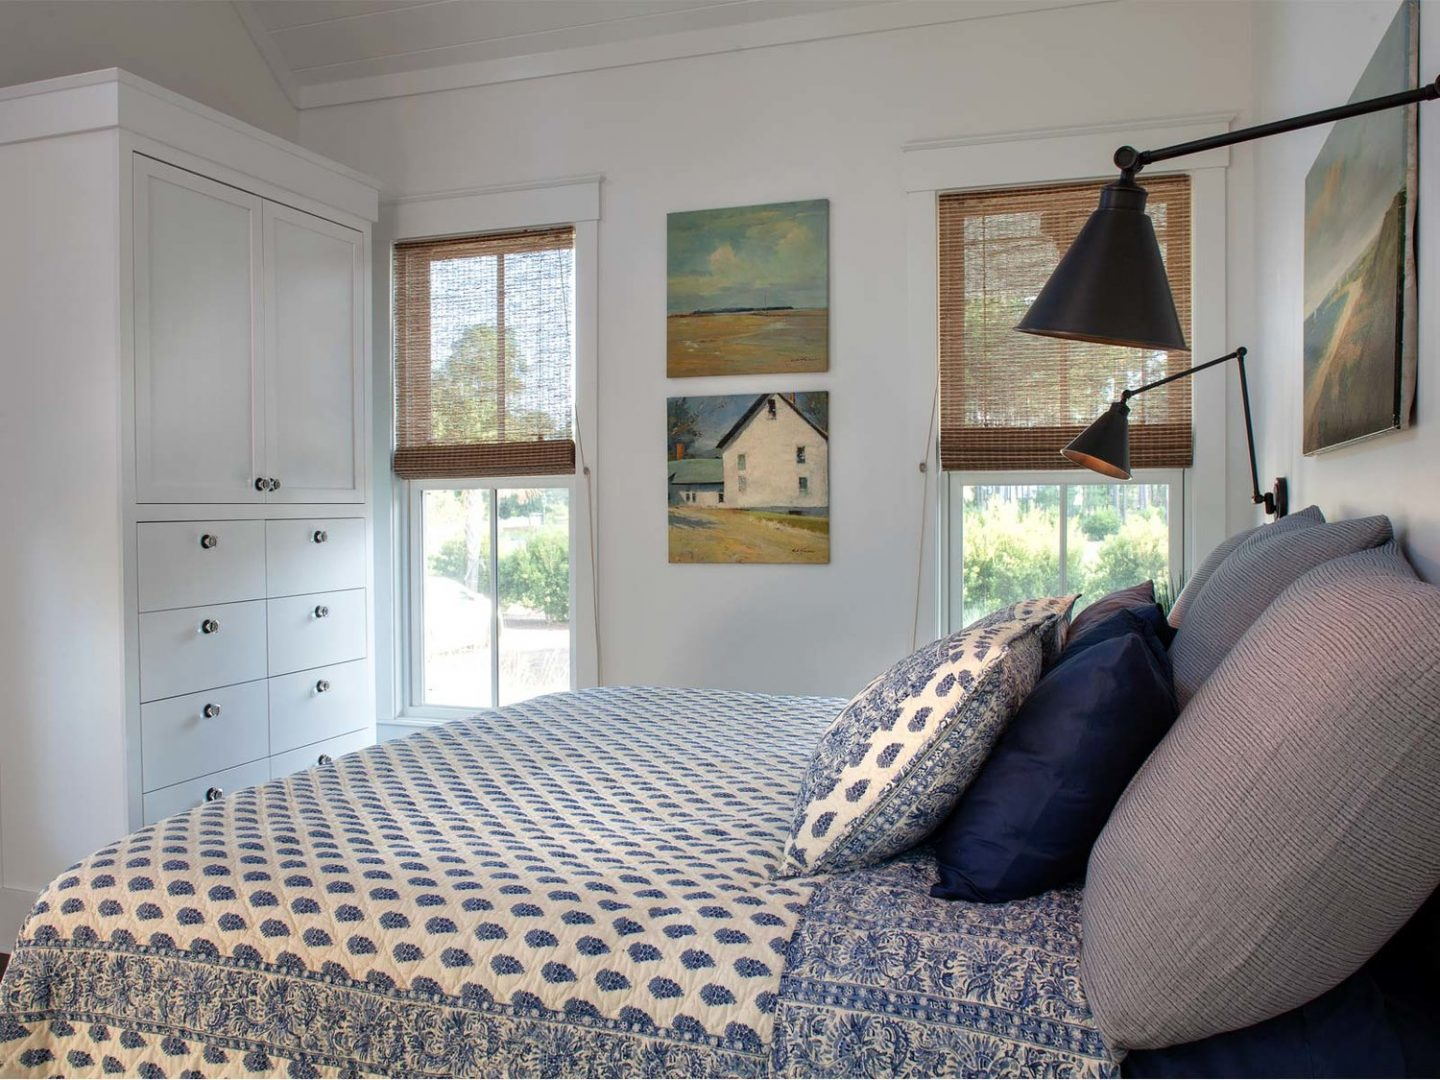 Coastal cottage blue and white bedroom in Palmetto Bluff. Lisa Furey Interiors.